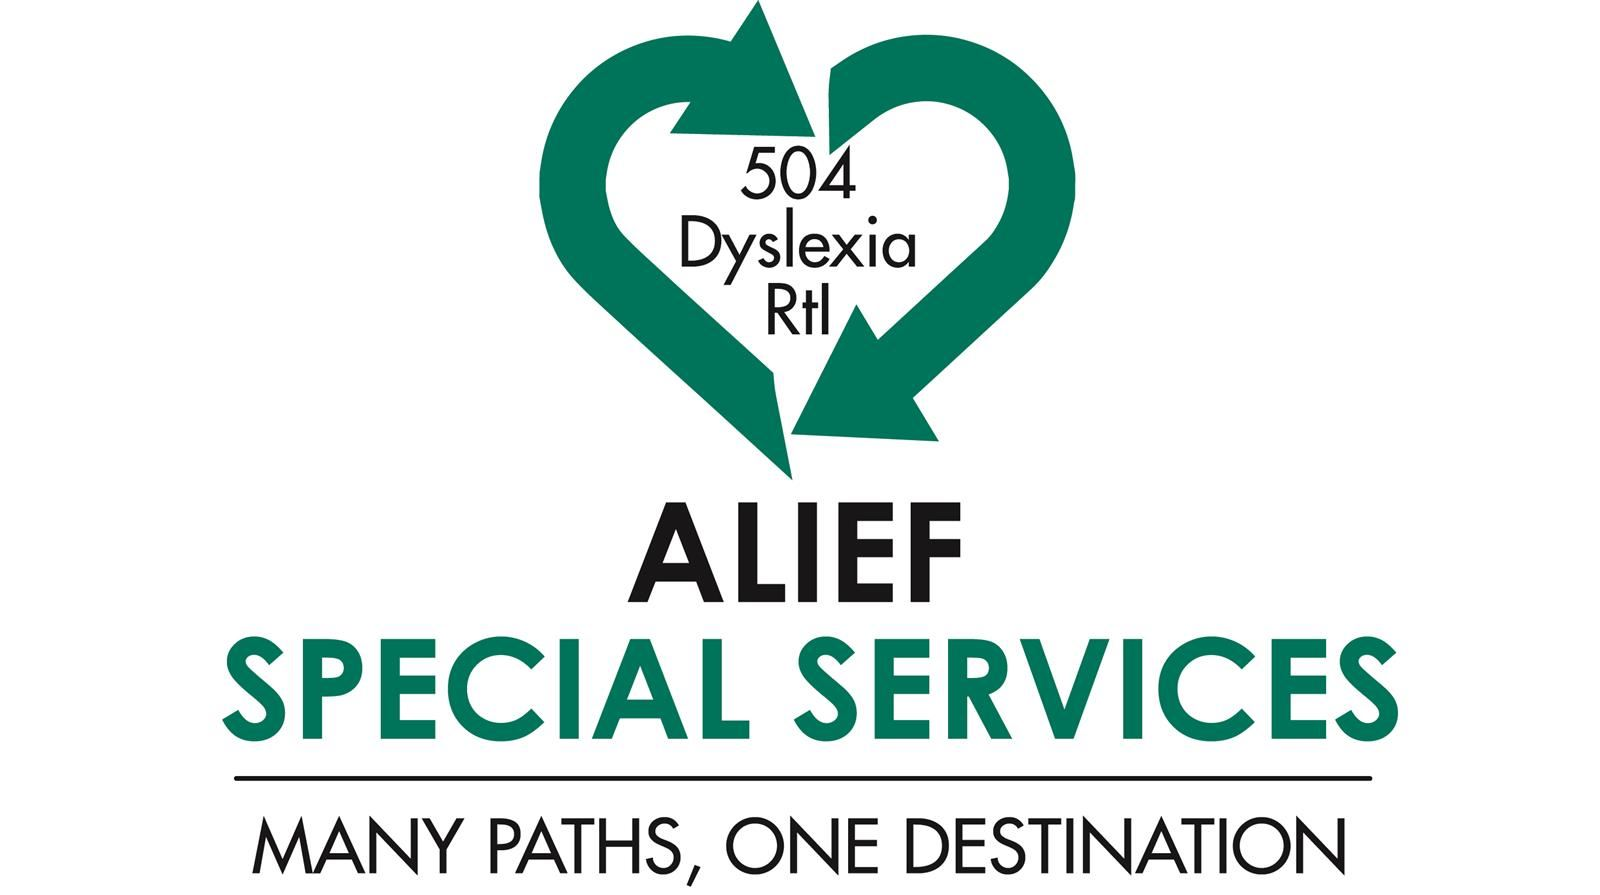 Alief Special Services logo Many Paths One Destination with heart over 504 Dyslexia RTI